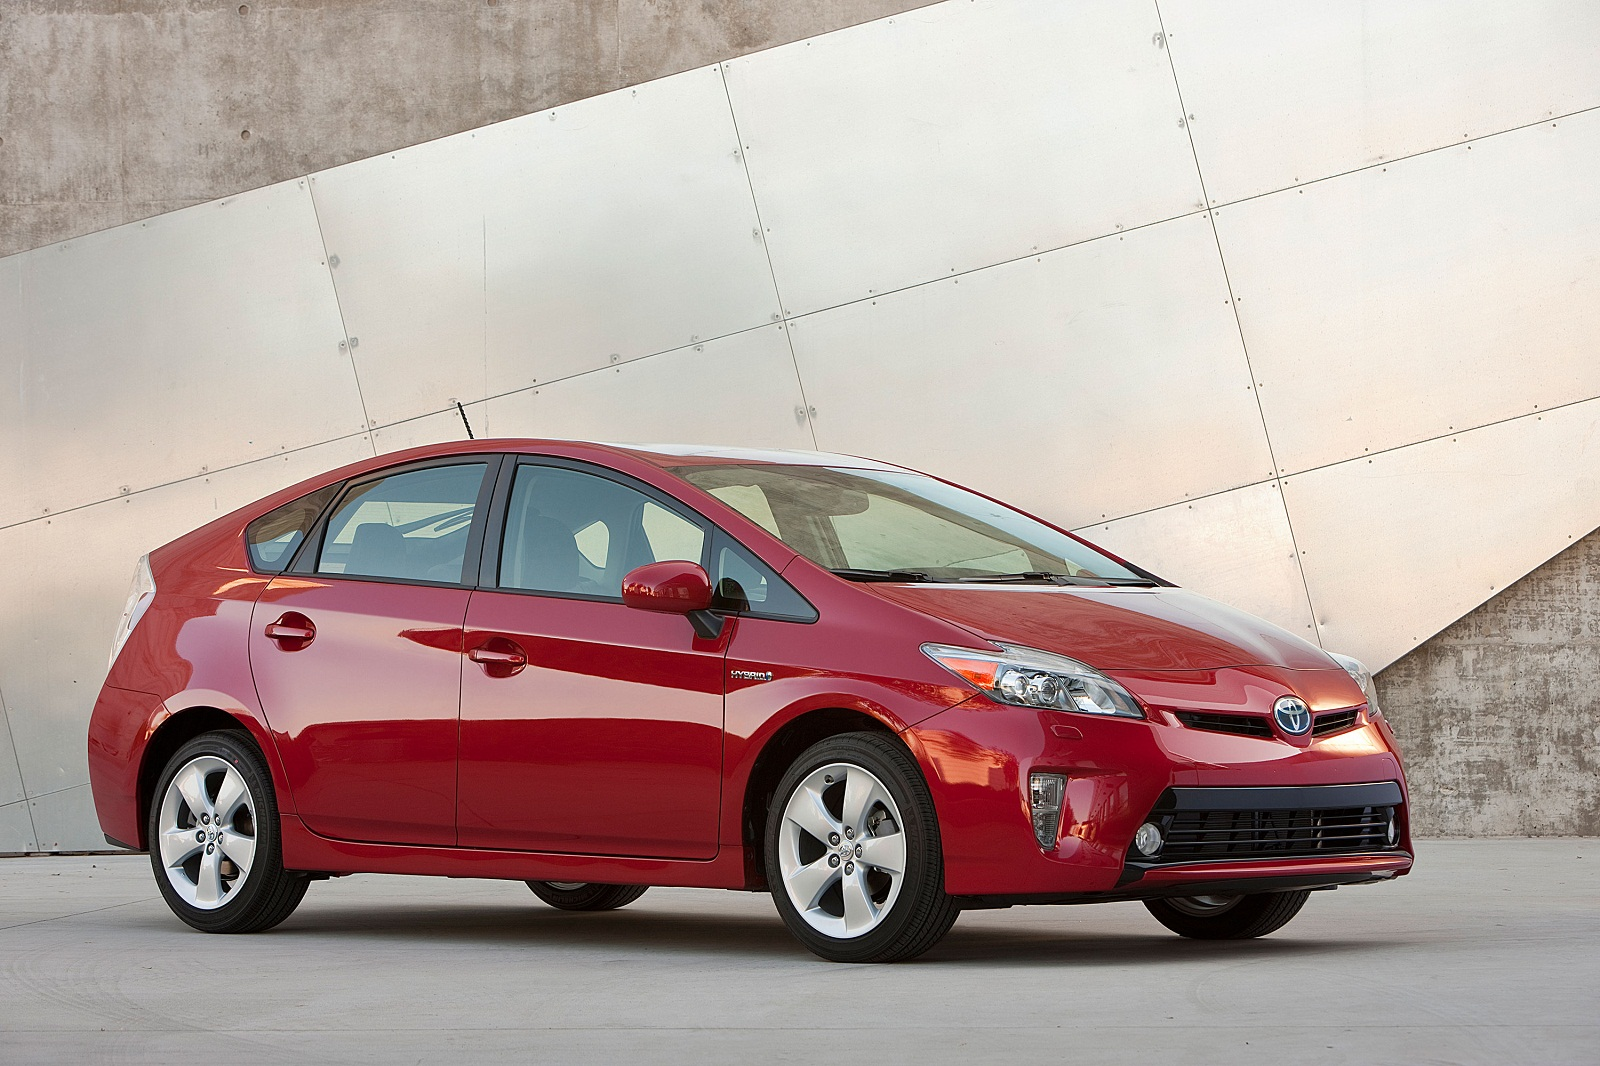 2013-2017 Toyota Prius models recalled for potential hybrid-system defect